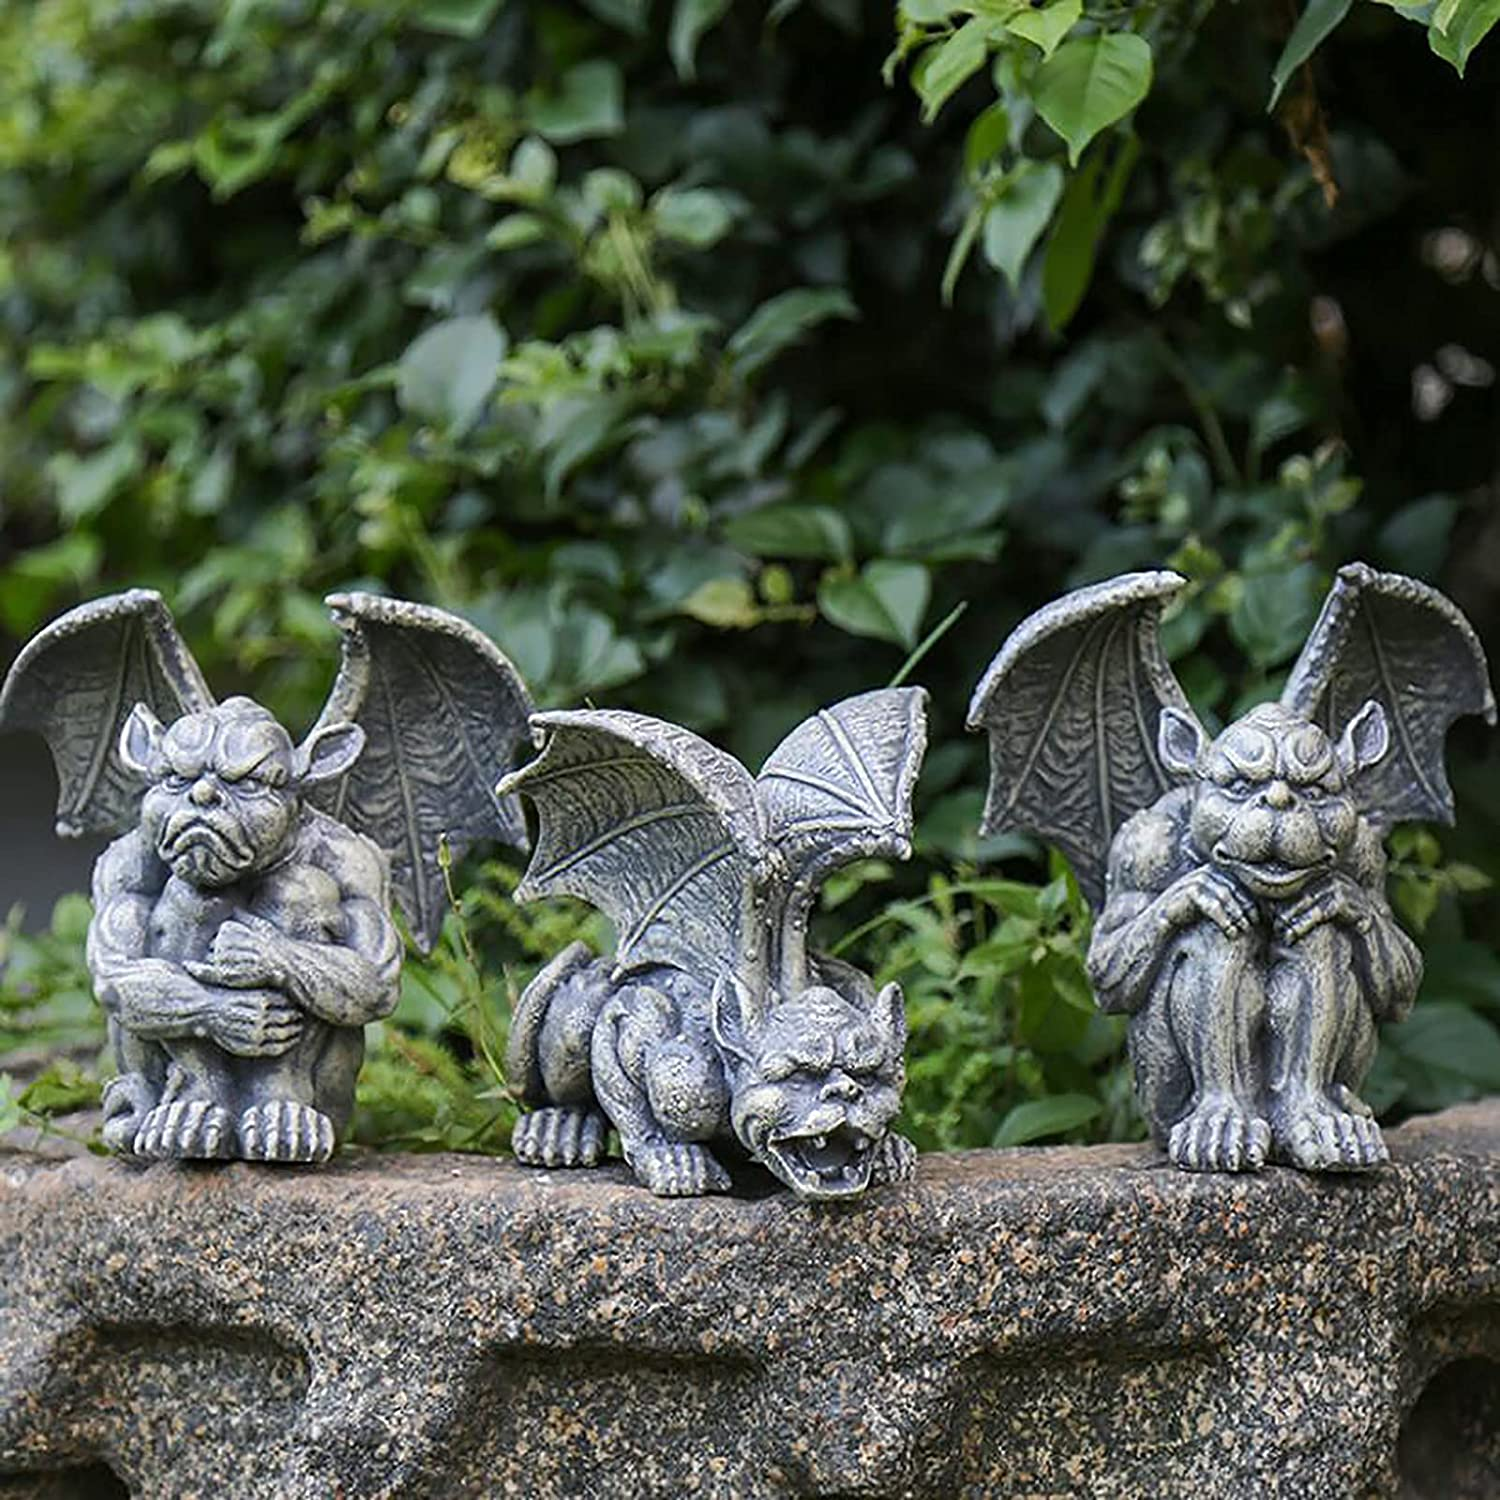 Nileco Monster Garden Statues,Resin Gargoyle Outdoor Statue Large Winged Dragon Sculptures Gothic Animals Statues,Yard Art Decor Backyard Porch Patio Lawn Balcony Statues-I One Size